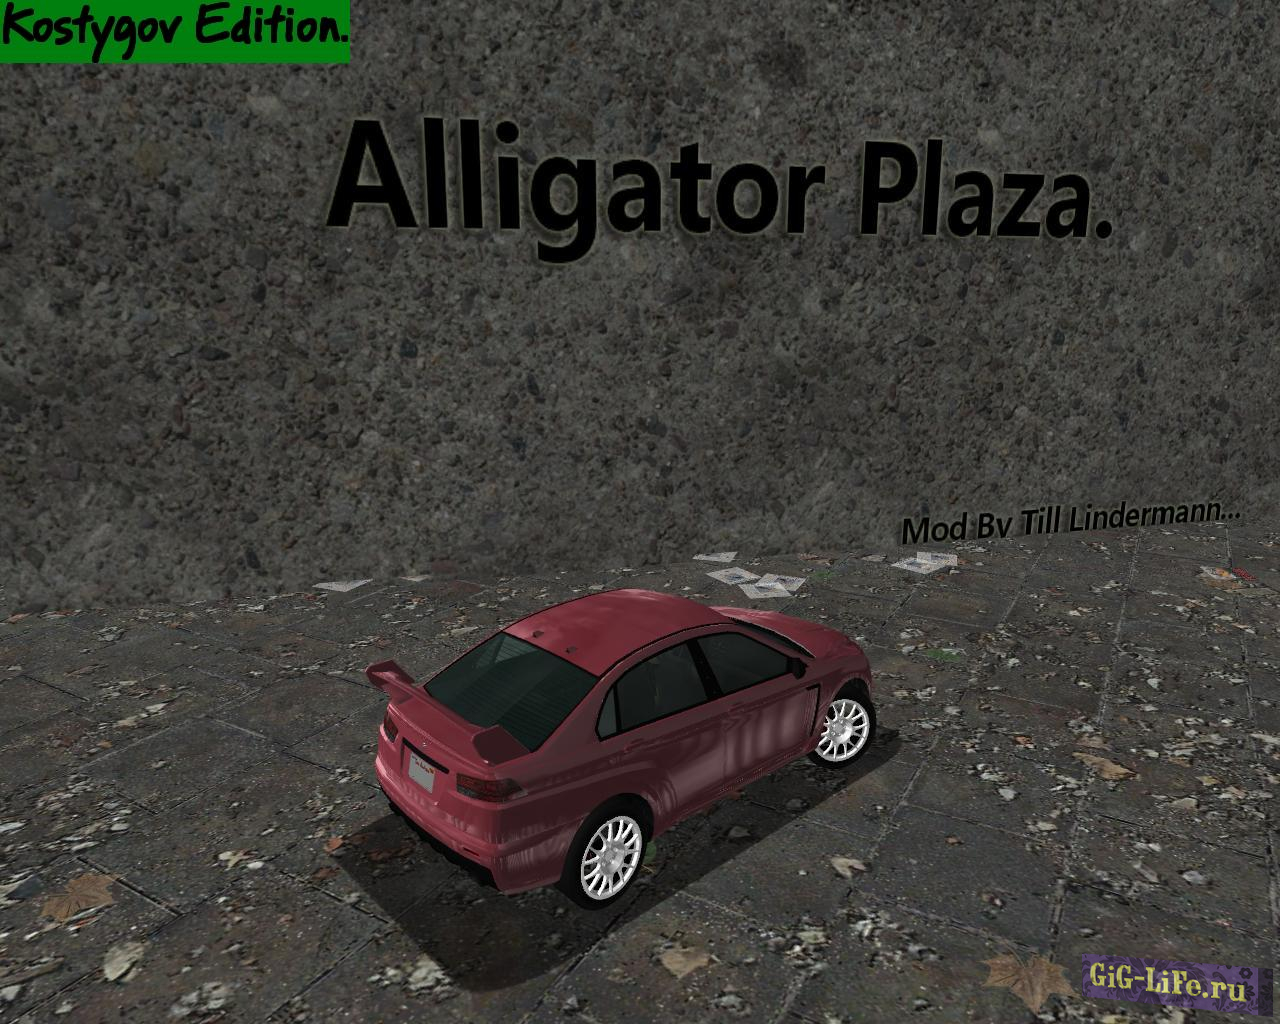 Alligator Plaza